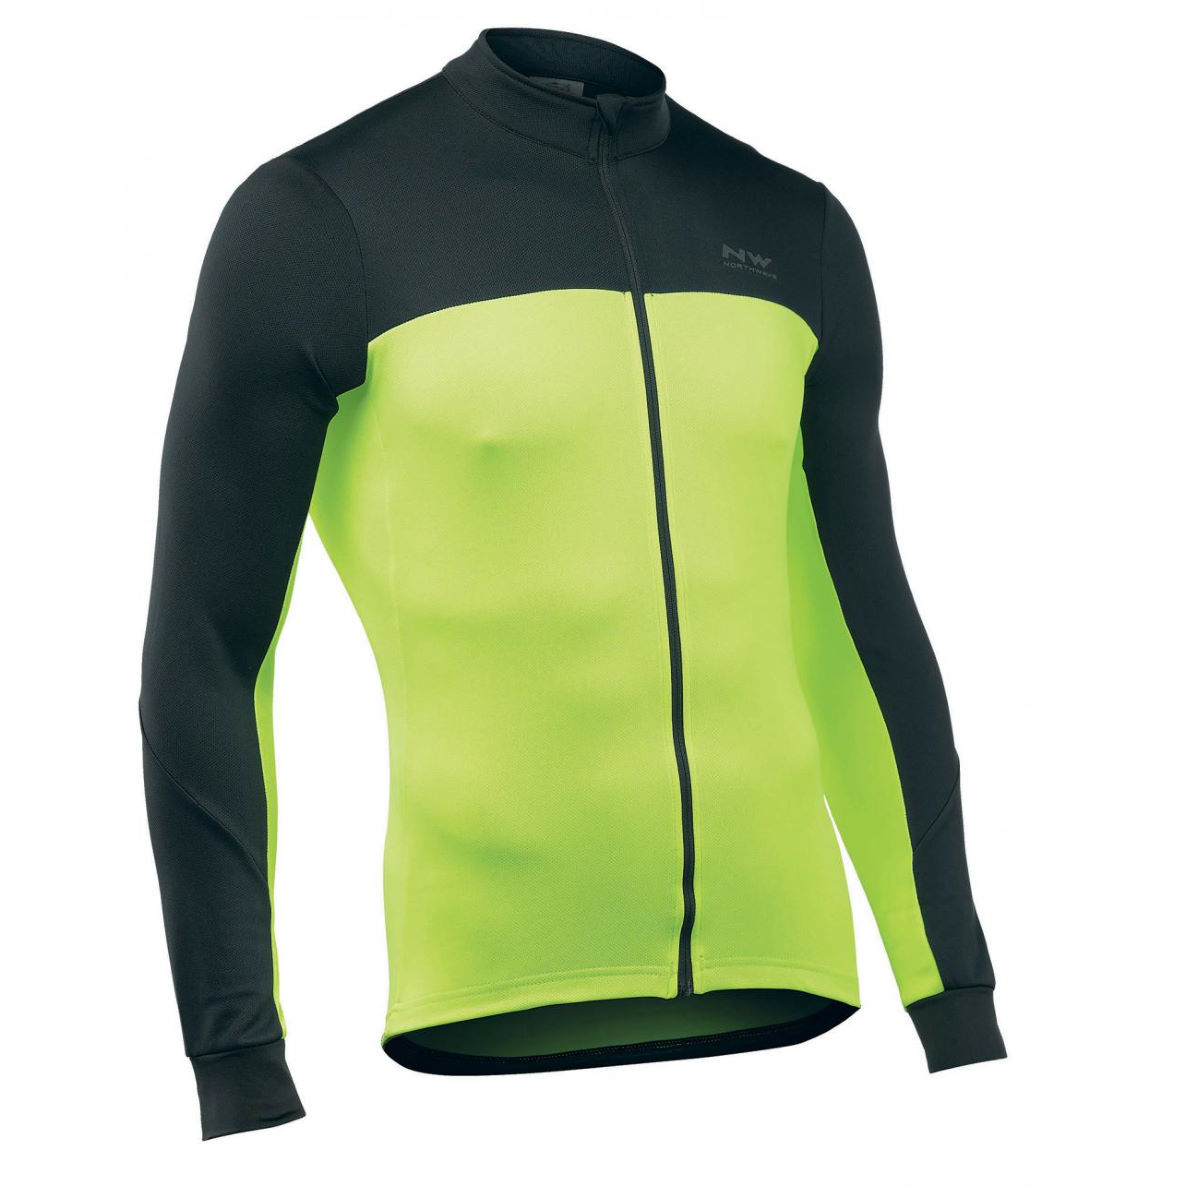 Northwave - Force 2 Long Sleeve Jersey - M Black - Yellow Maillots